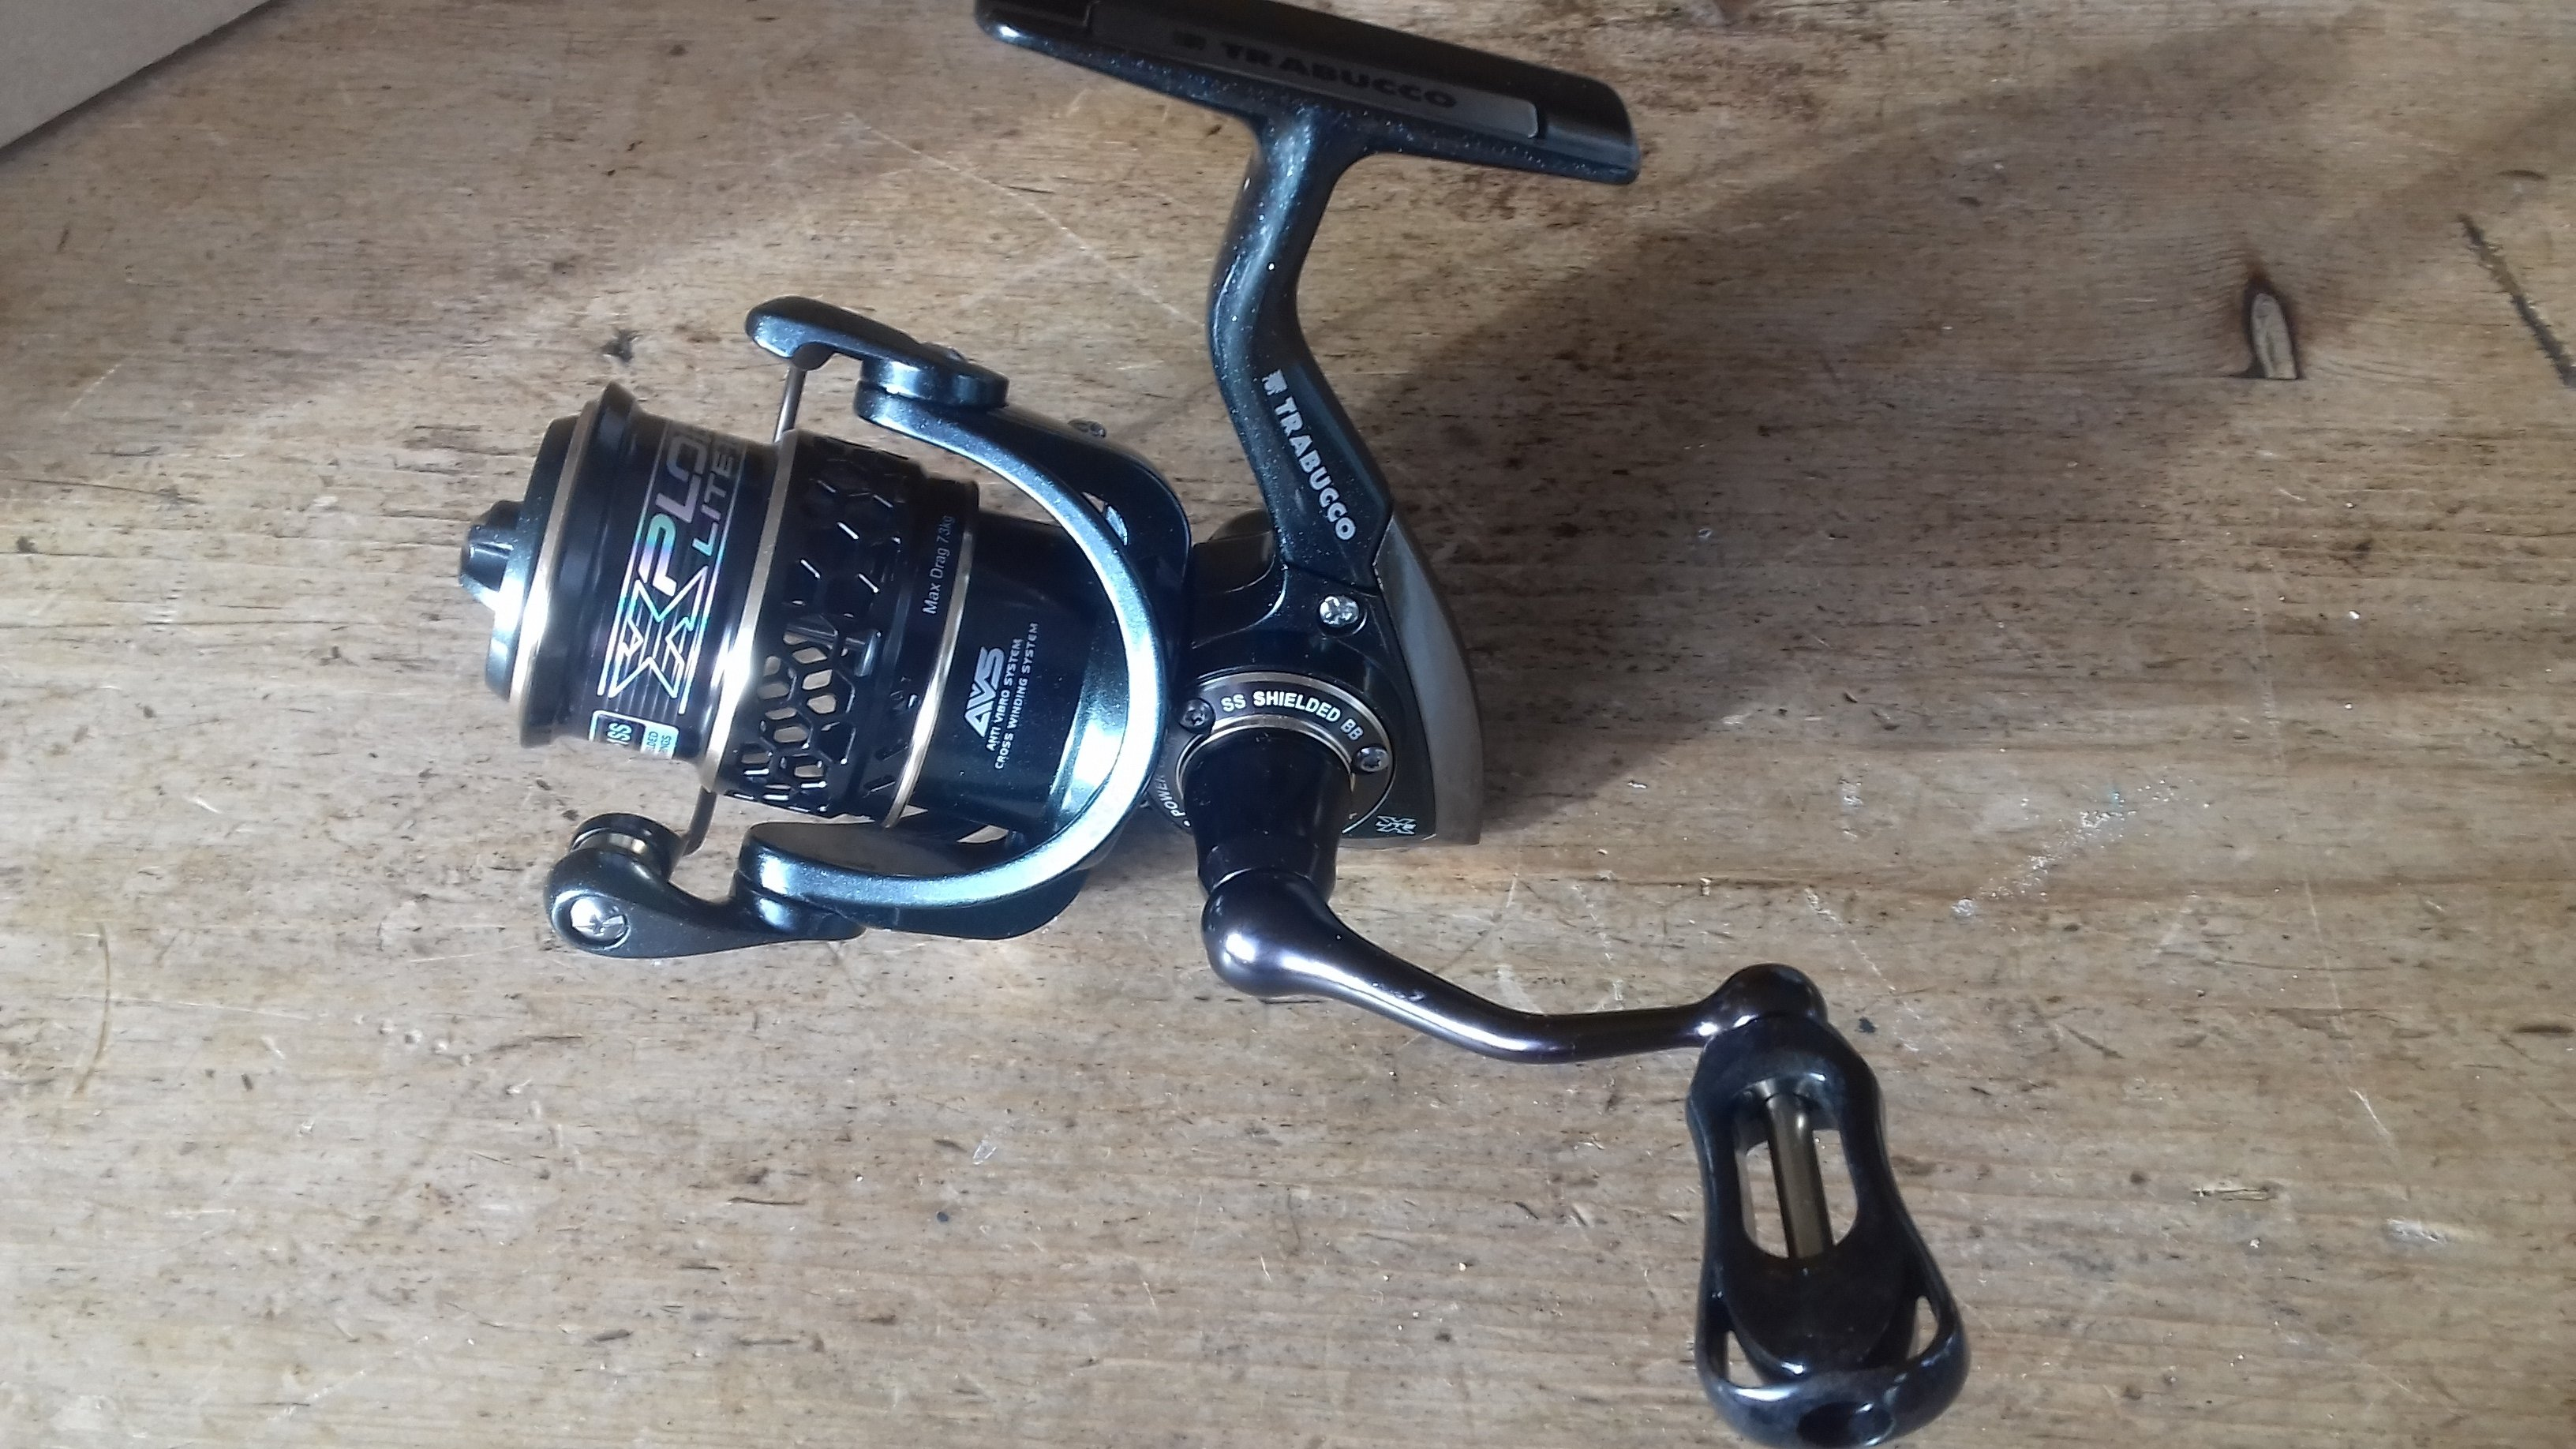 Xplore x light 1000 Ultralight lure fishing reel 7bb  7kg of drag